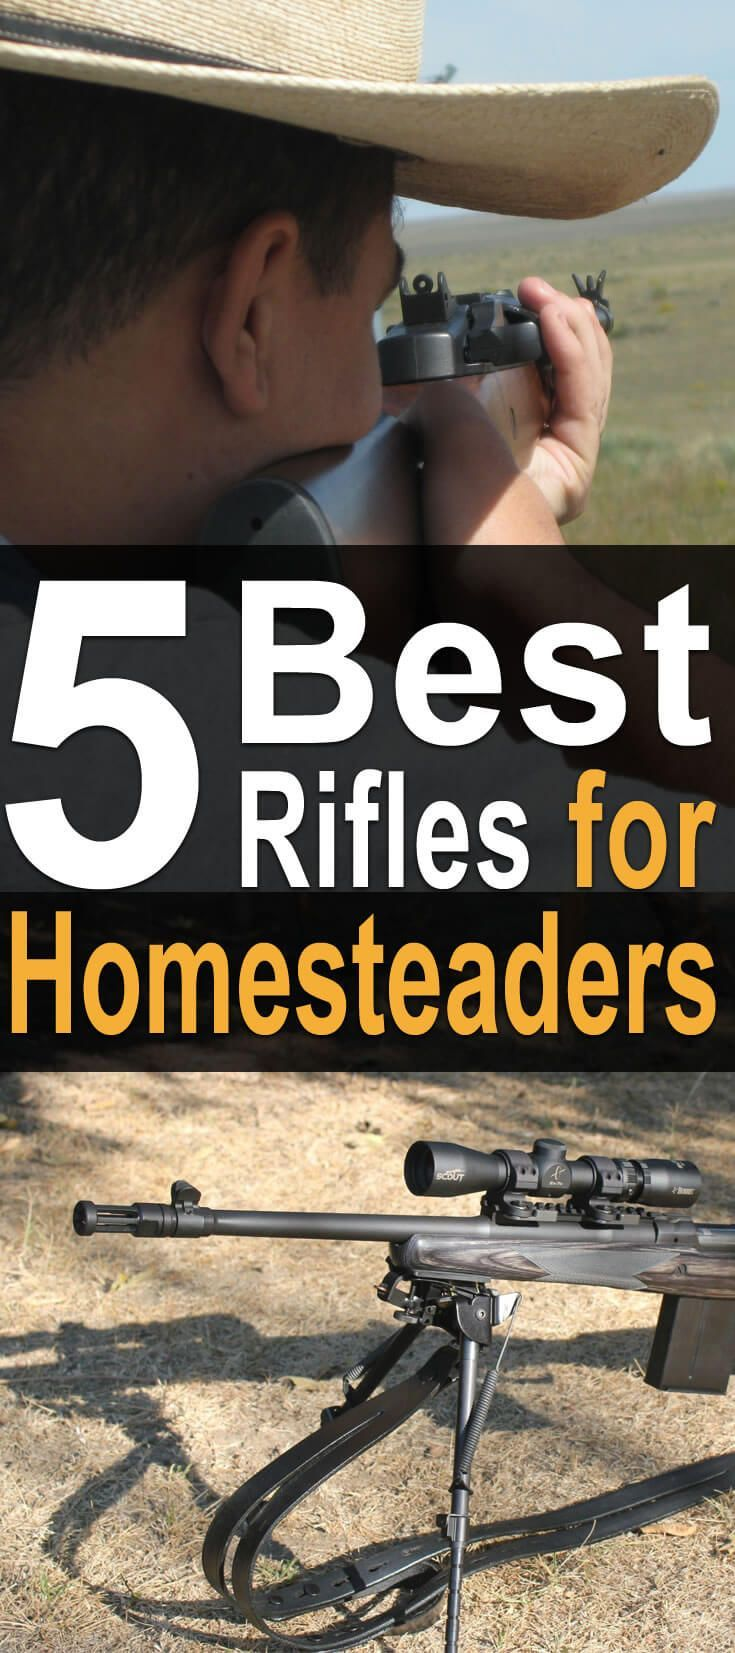 5 Best Rifles for Homesteaders. As a homesteader, you have to rely on tools each and every day. One of those tools is a firearm. It can be used for self-defense, for hunting, for protecting livestock, for target shooting, and for pest control, to name a few things. #homesteadsurvivalsite #firearm #Protection